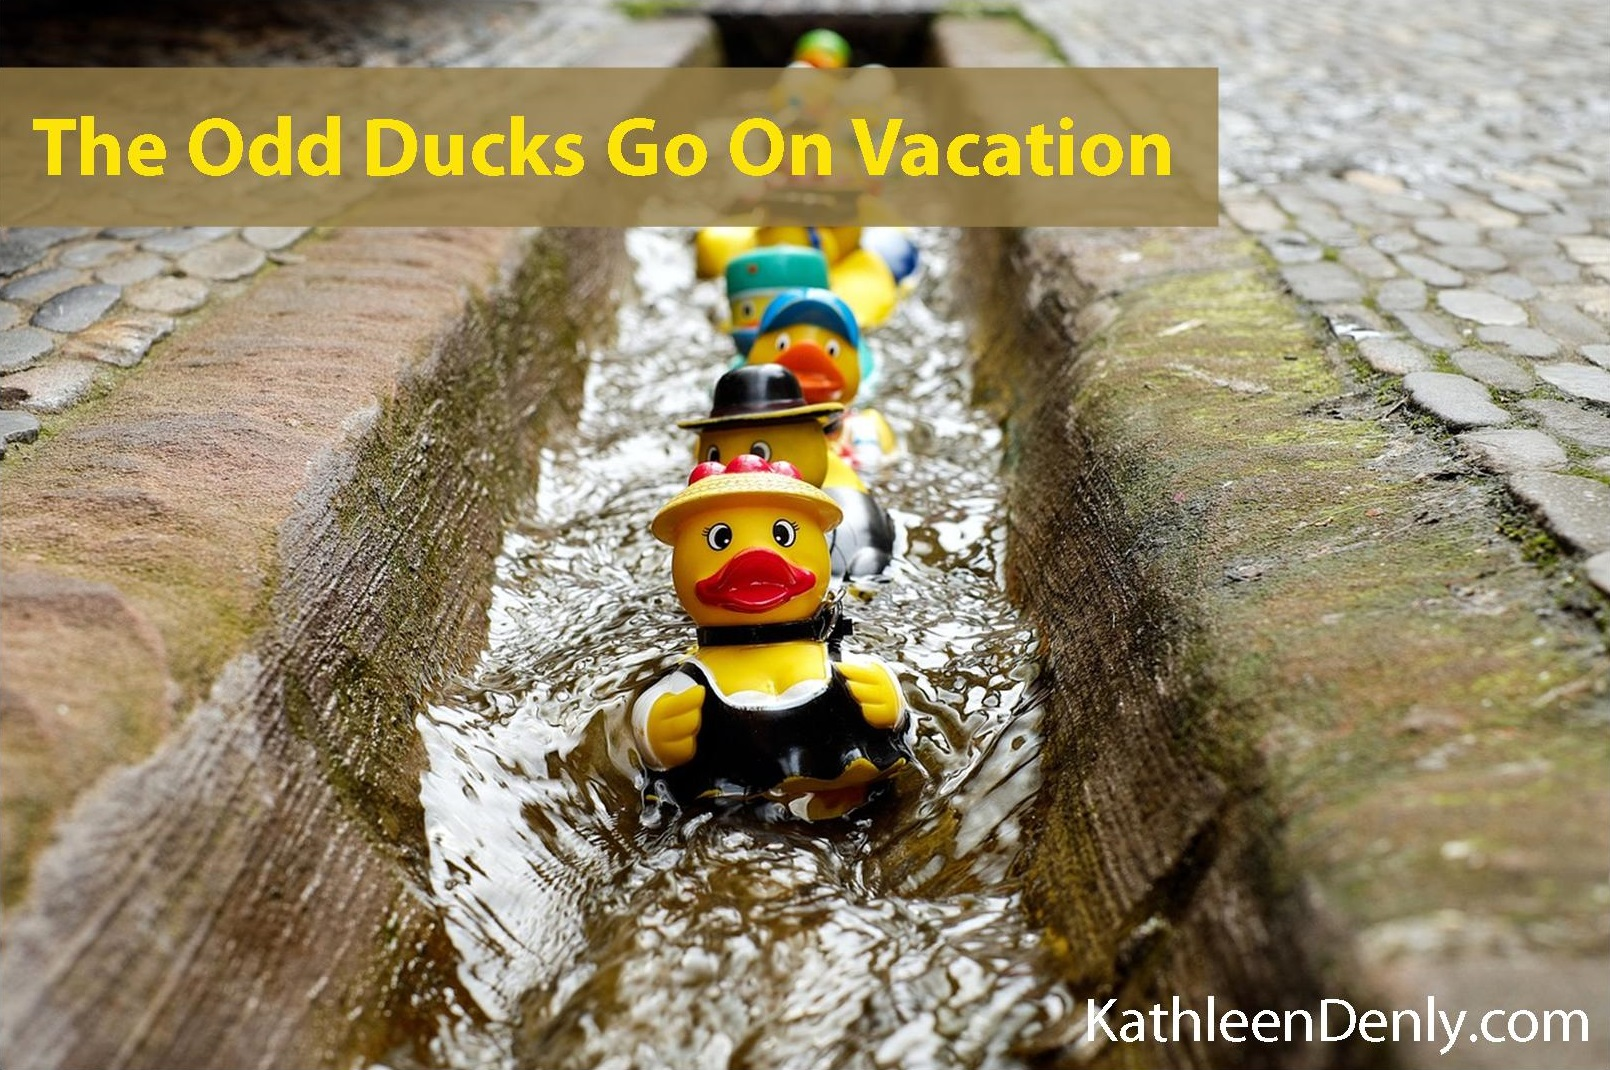 Title Image for The Odd Ducks Go On Vacation on Kathleen Denly.com . Shows various rubber duckies dressed in different outfits and floating in a line down an old drainage channel between cobblestone walkways.